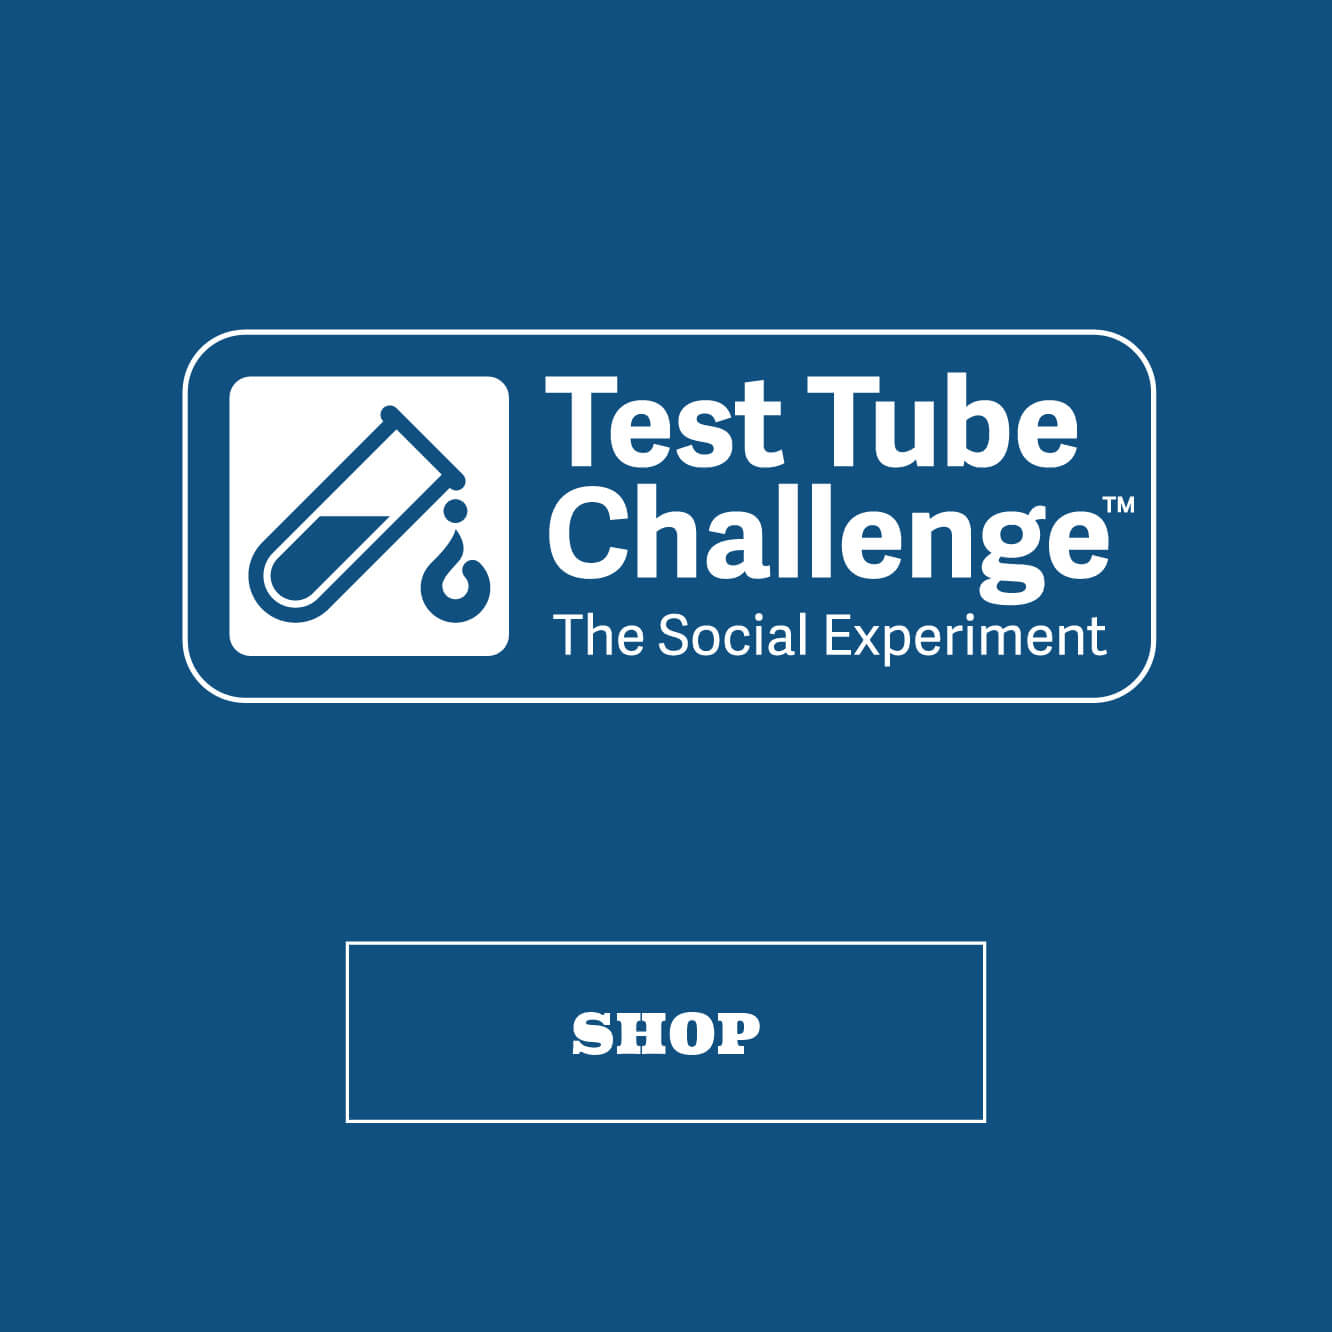 Shop Ridley's Test Tube Challenge